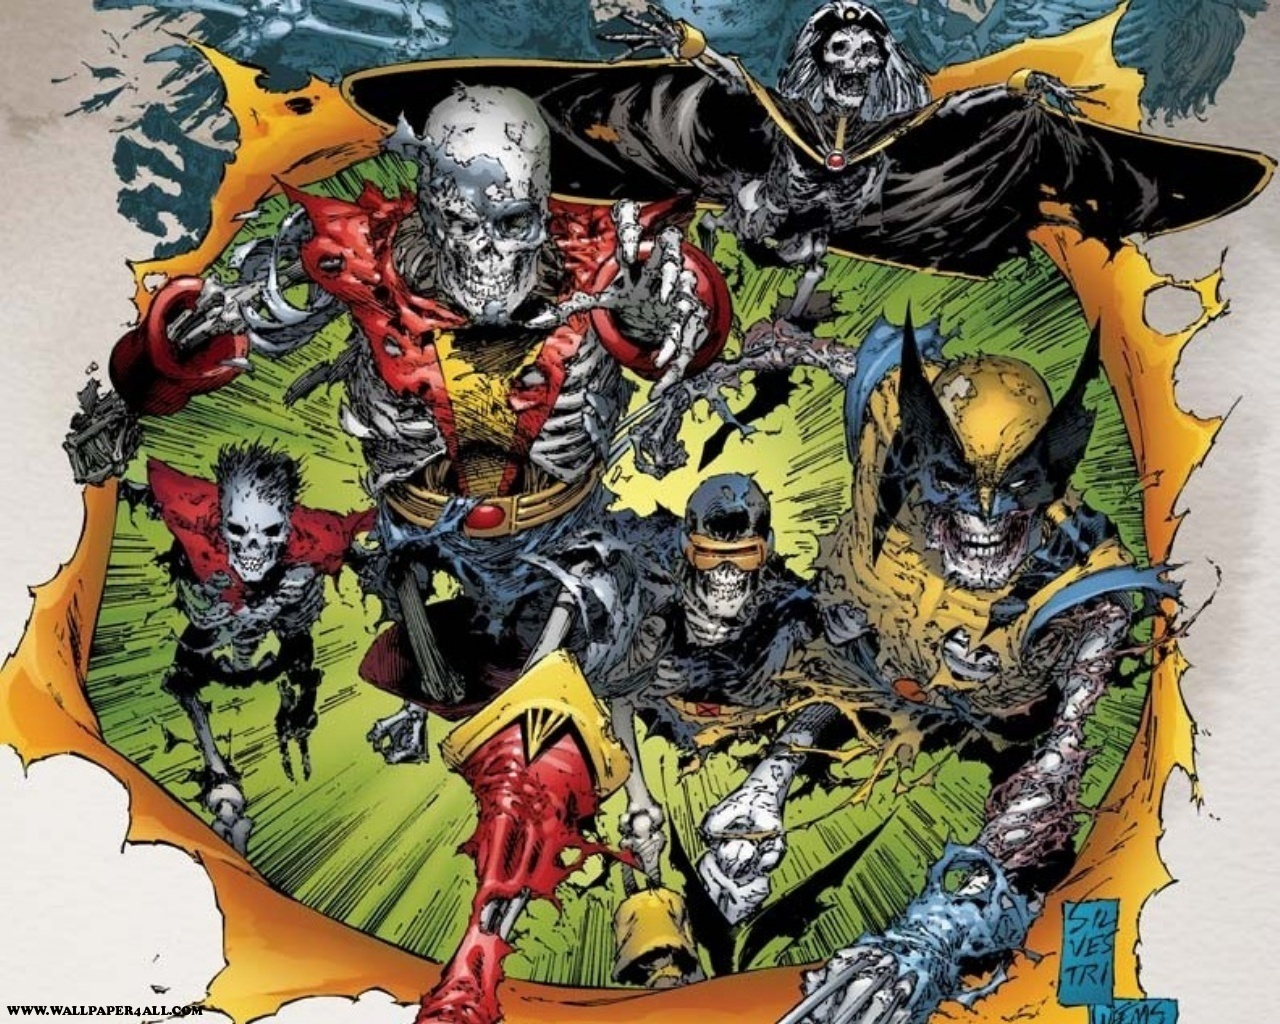 Marvel comics undead x men